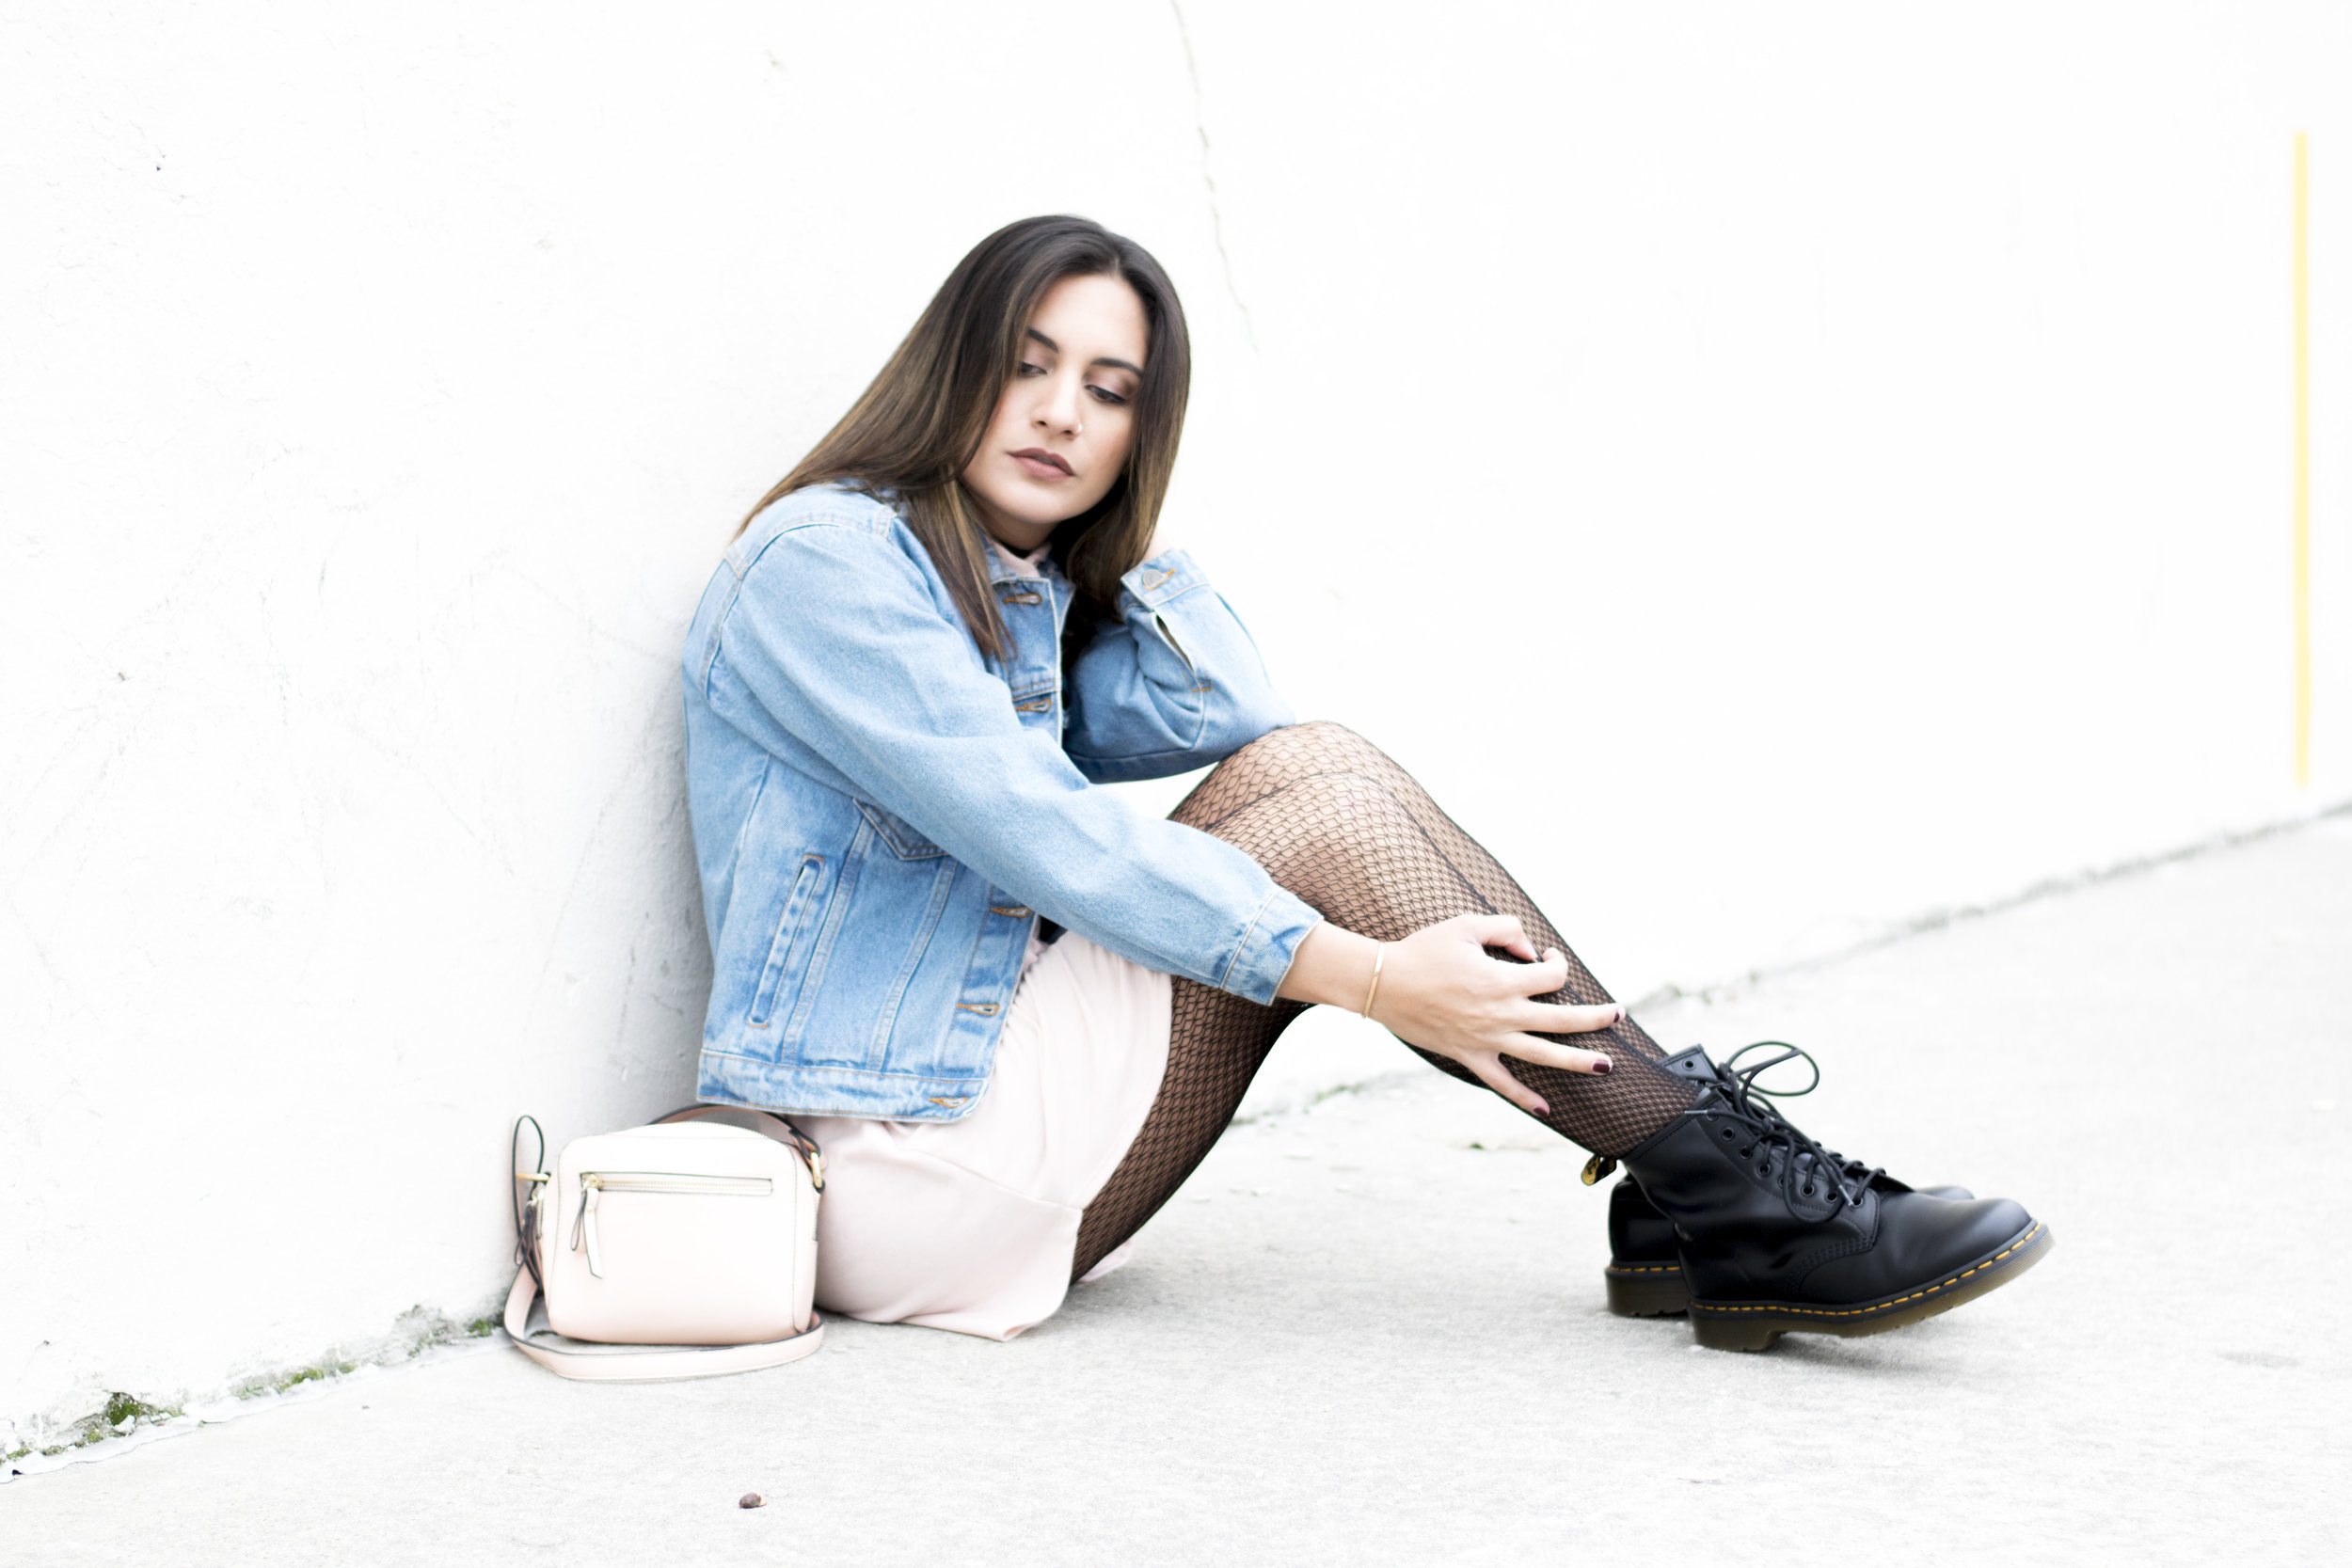 Dr. Martens' 1460 Boot and the Beauty of Self-Expression